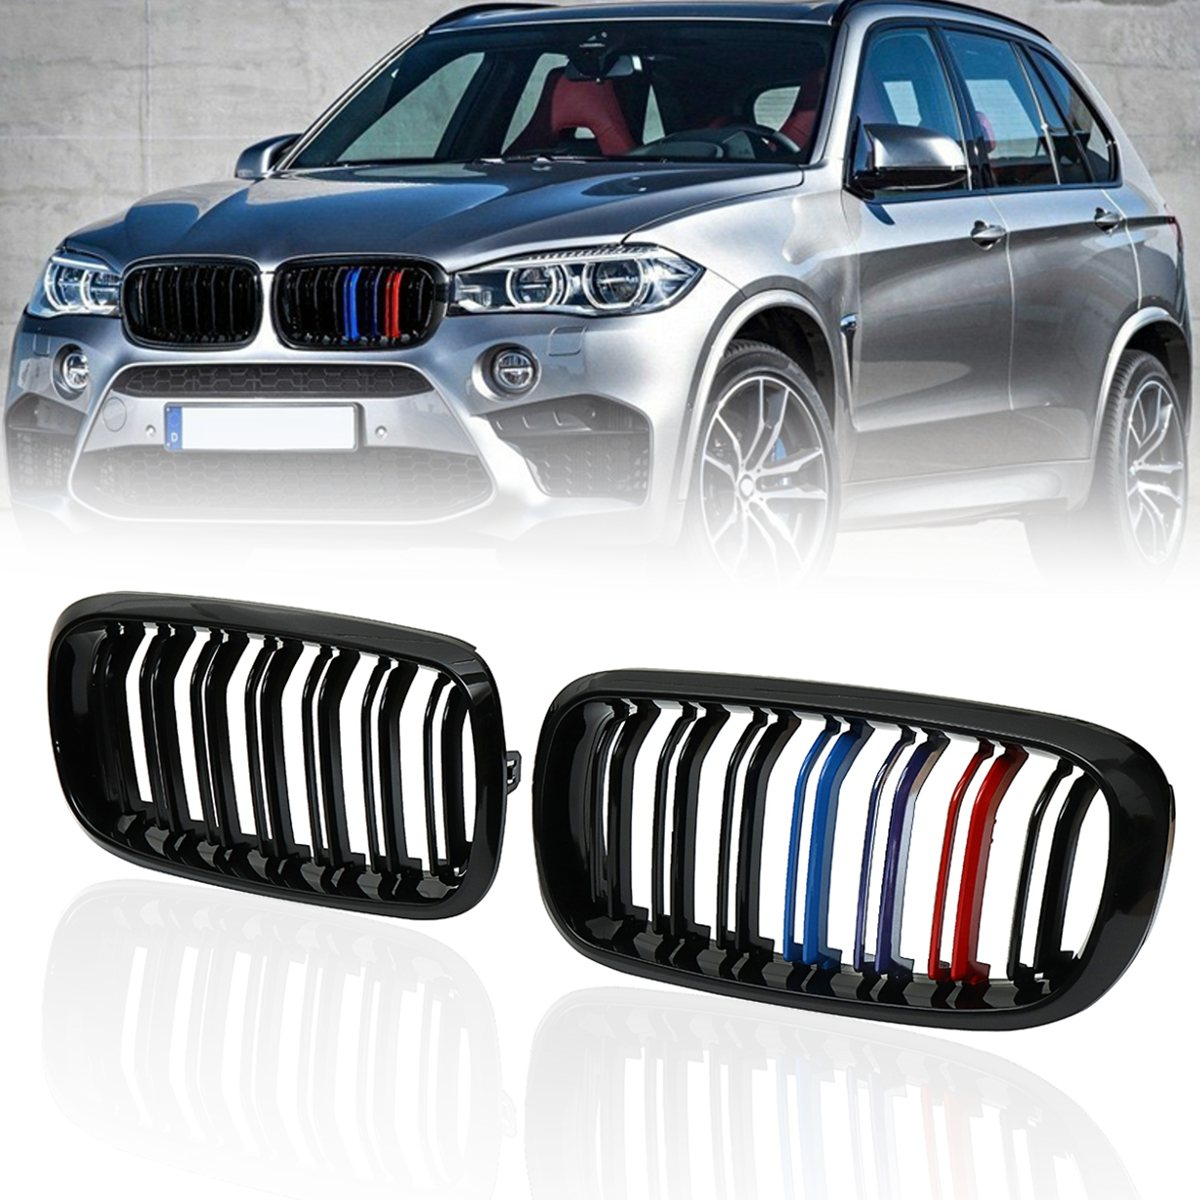 Pair Matte Gloss Black M Color Front Double Slat Kidney Grille For BMW F86 F15 F16 X5 X6 X5M F85 X6M F86 2014 2015 2016 2017 pair gloss matt black m color front kidney racing bumper grille grill for bmw x5 f15 x6 f16 x5m f85 x6m f86 2014 2015 2016 2017